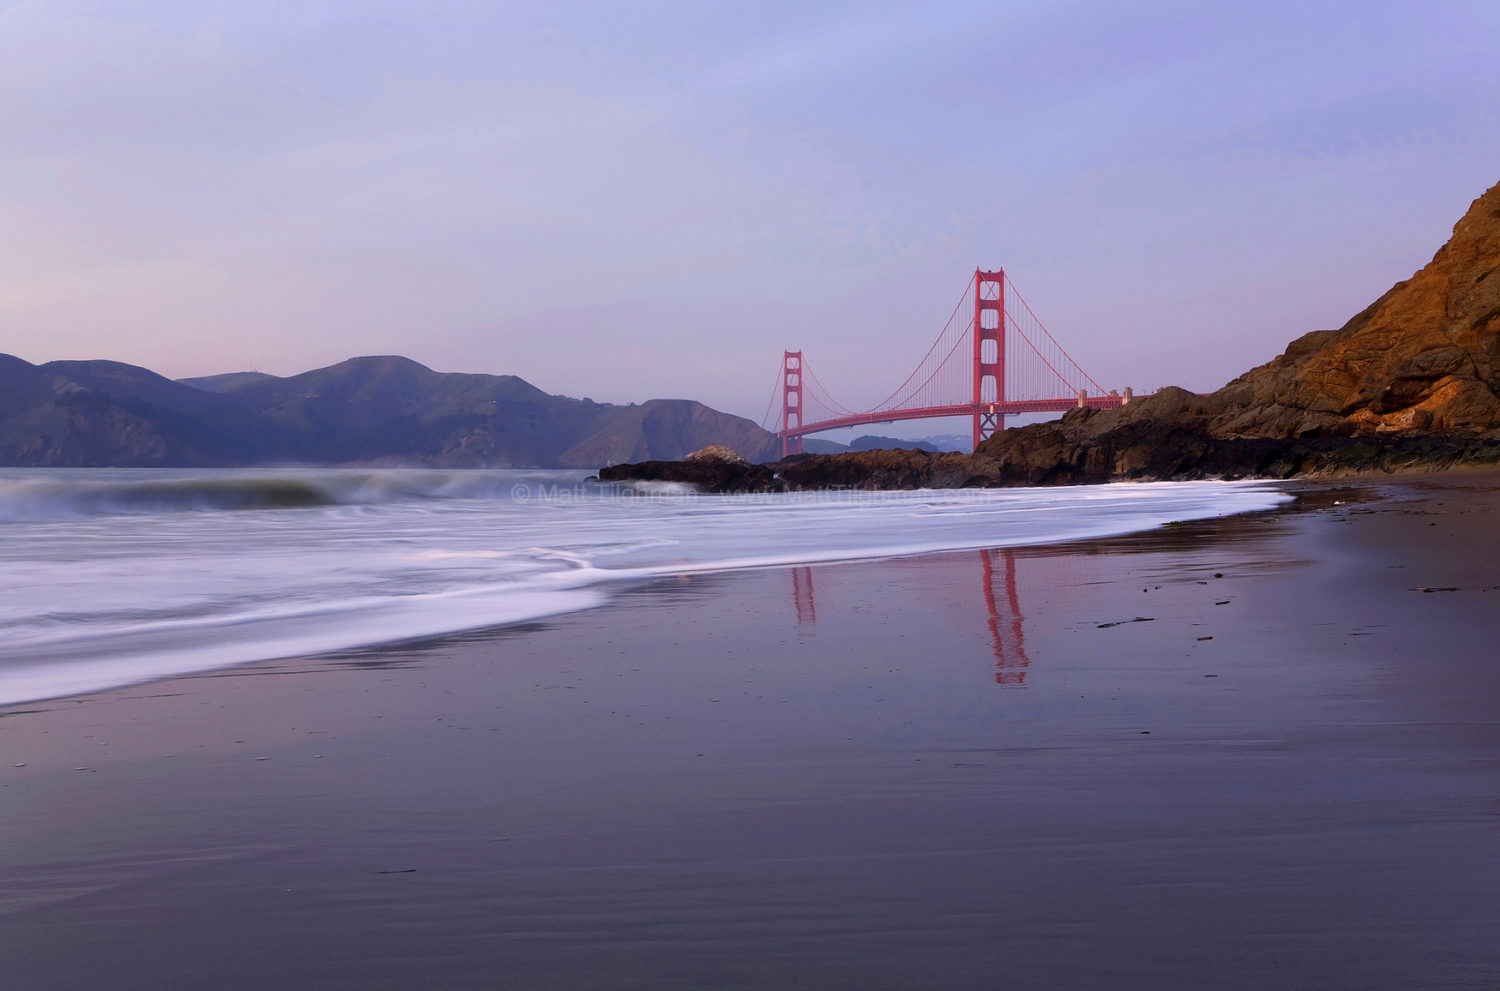 Fine art stock photograph of the Golden Gate Bridge. California's iconic bridge, seen from Baker Beach, connects San Francisco's Presidio to the Marin Headlands.